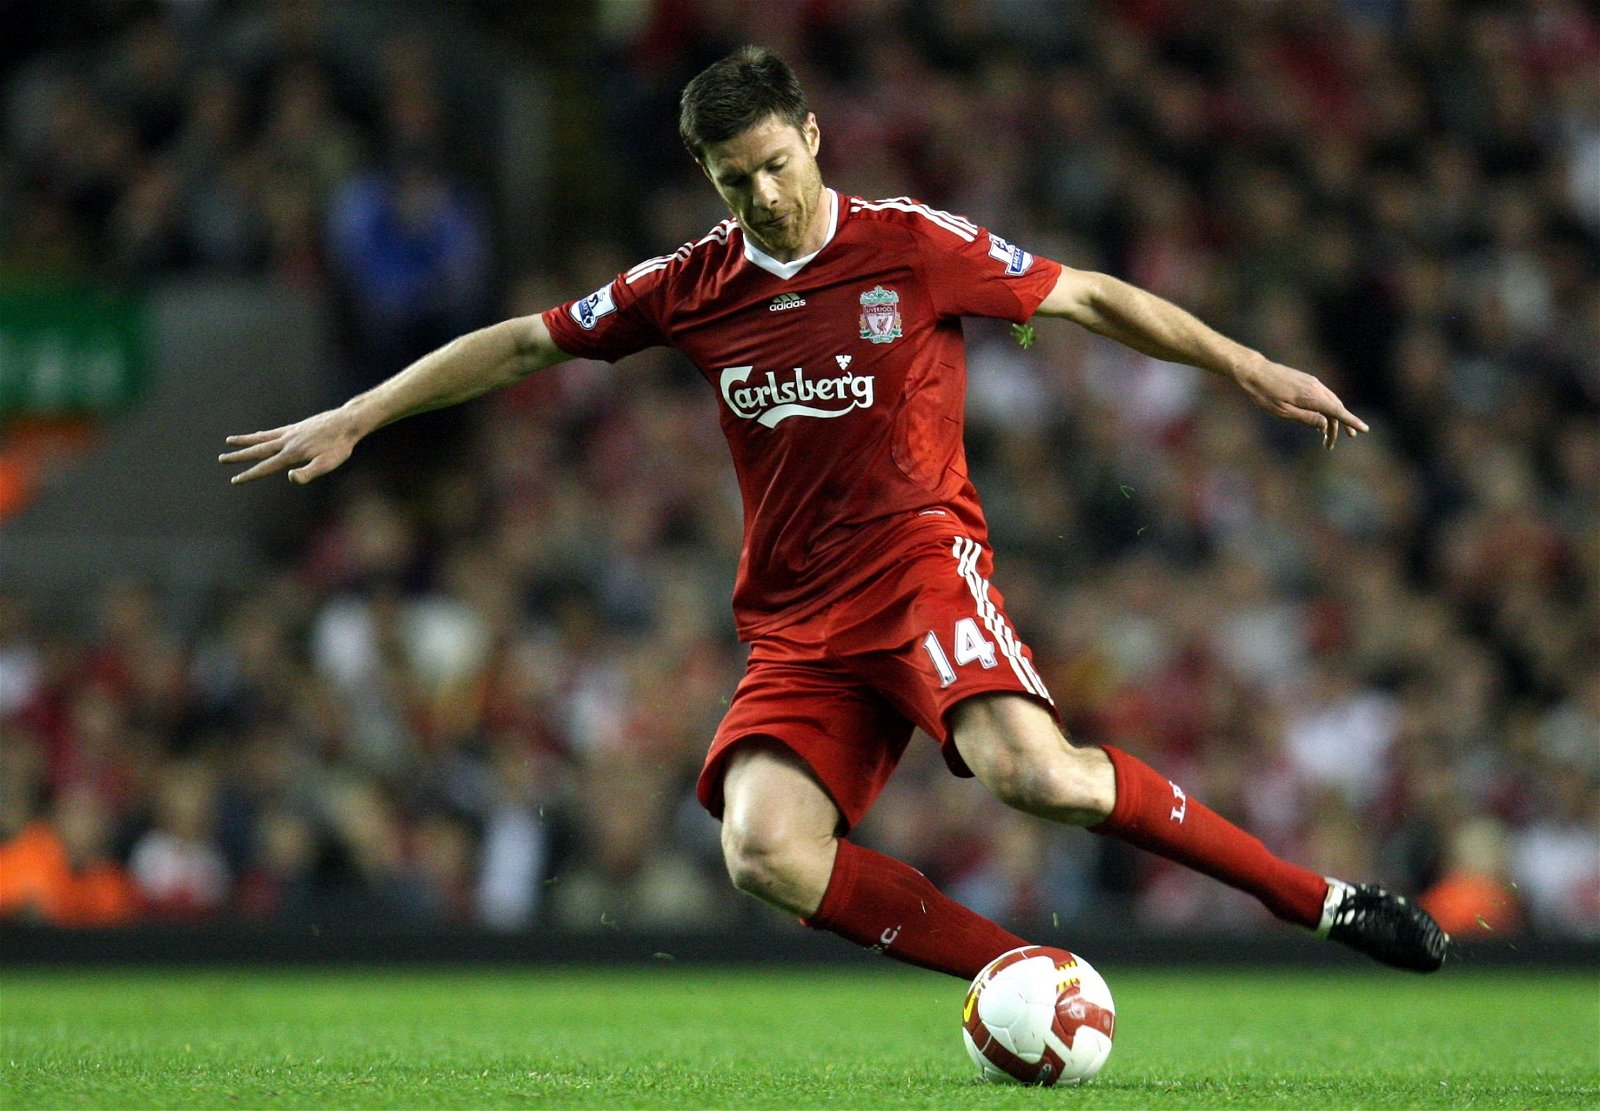 Xabi Alonso playing for Liverpool in 2009